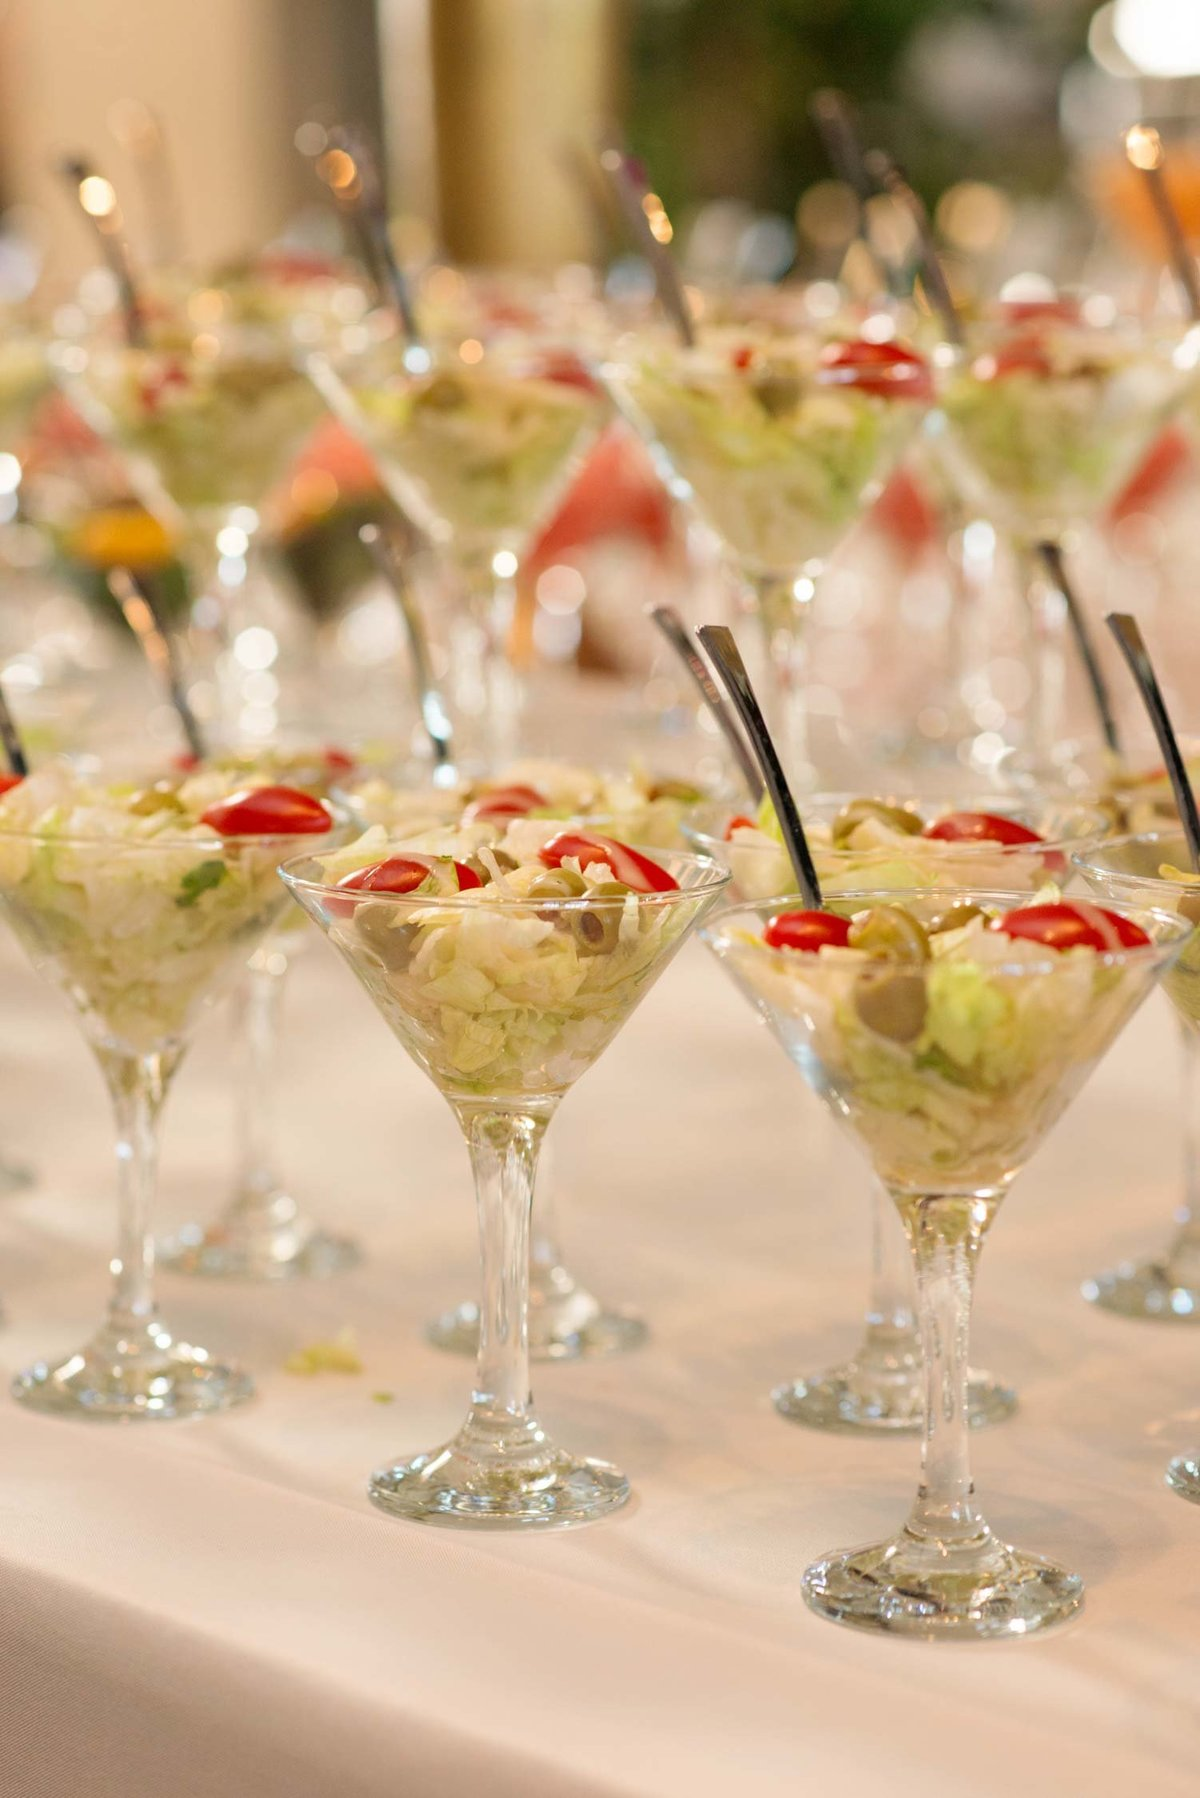 hors d'oeuvres in martini glasses at Hempstead House